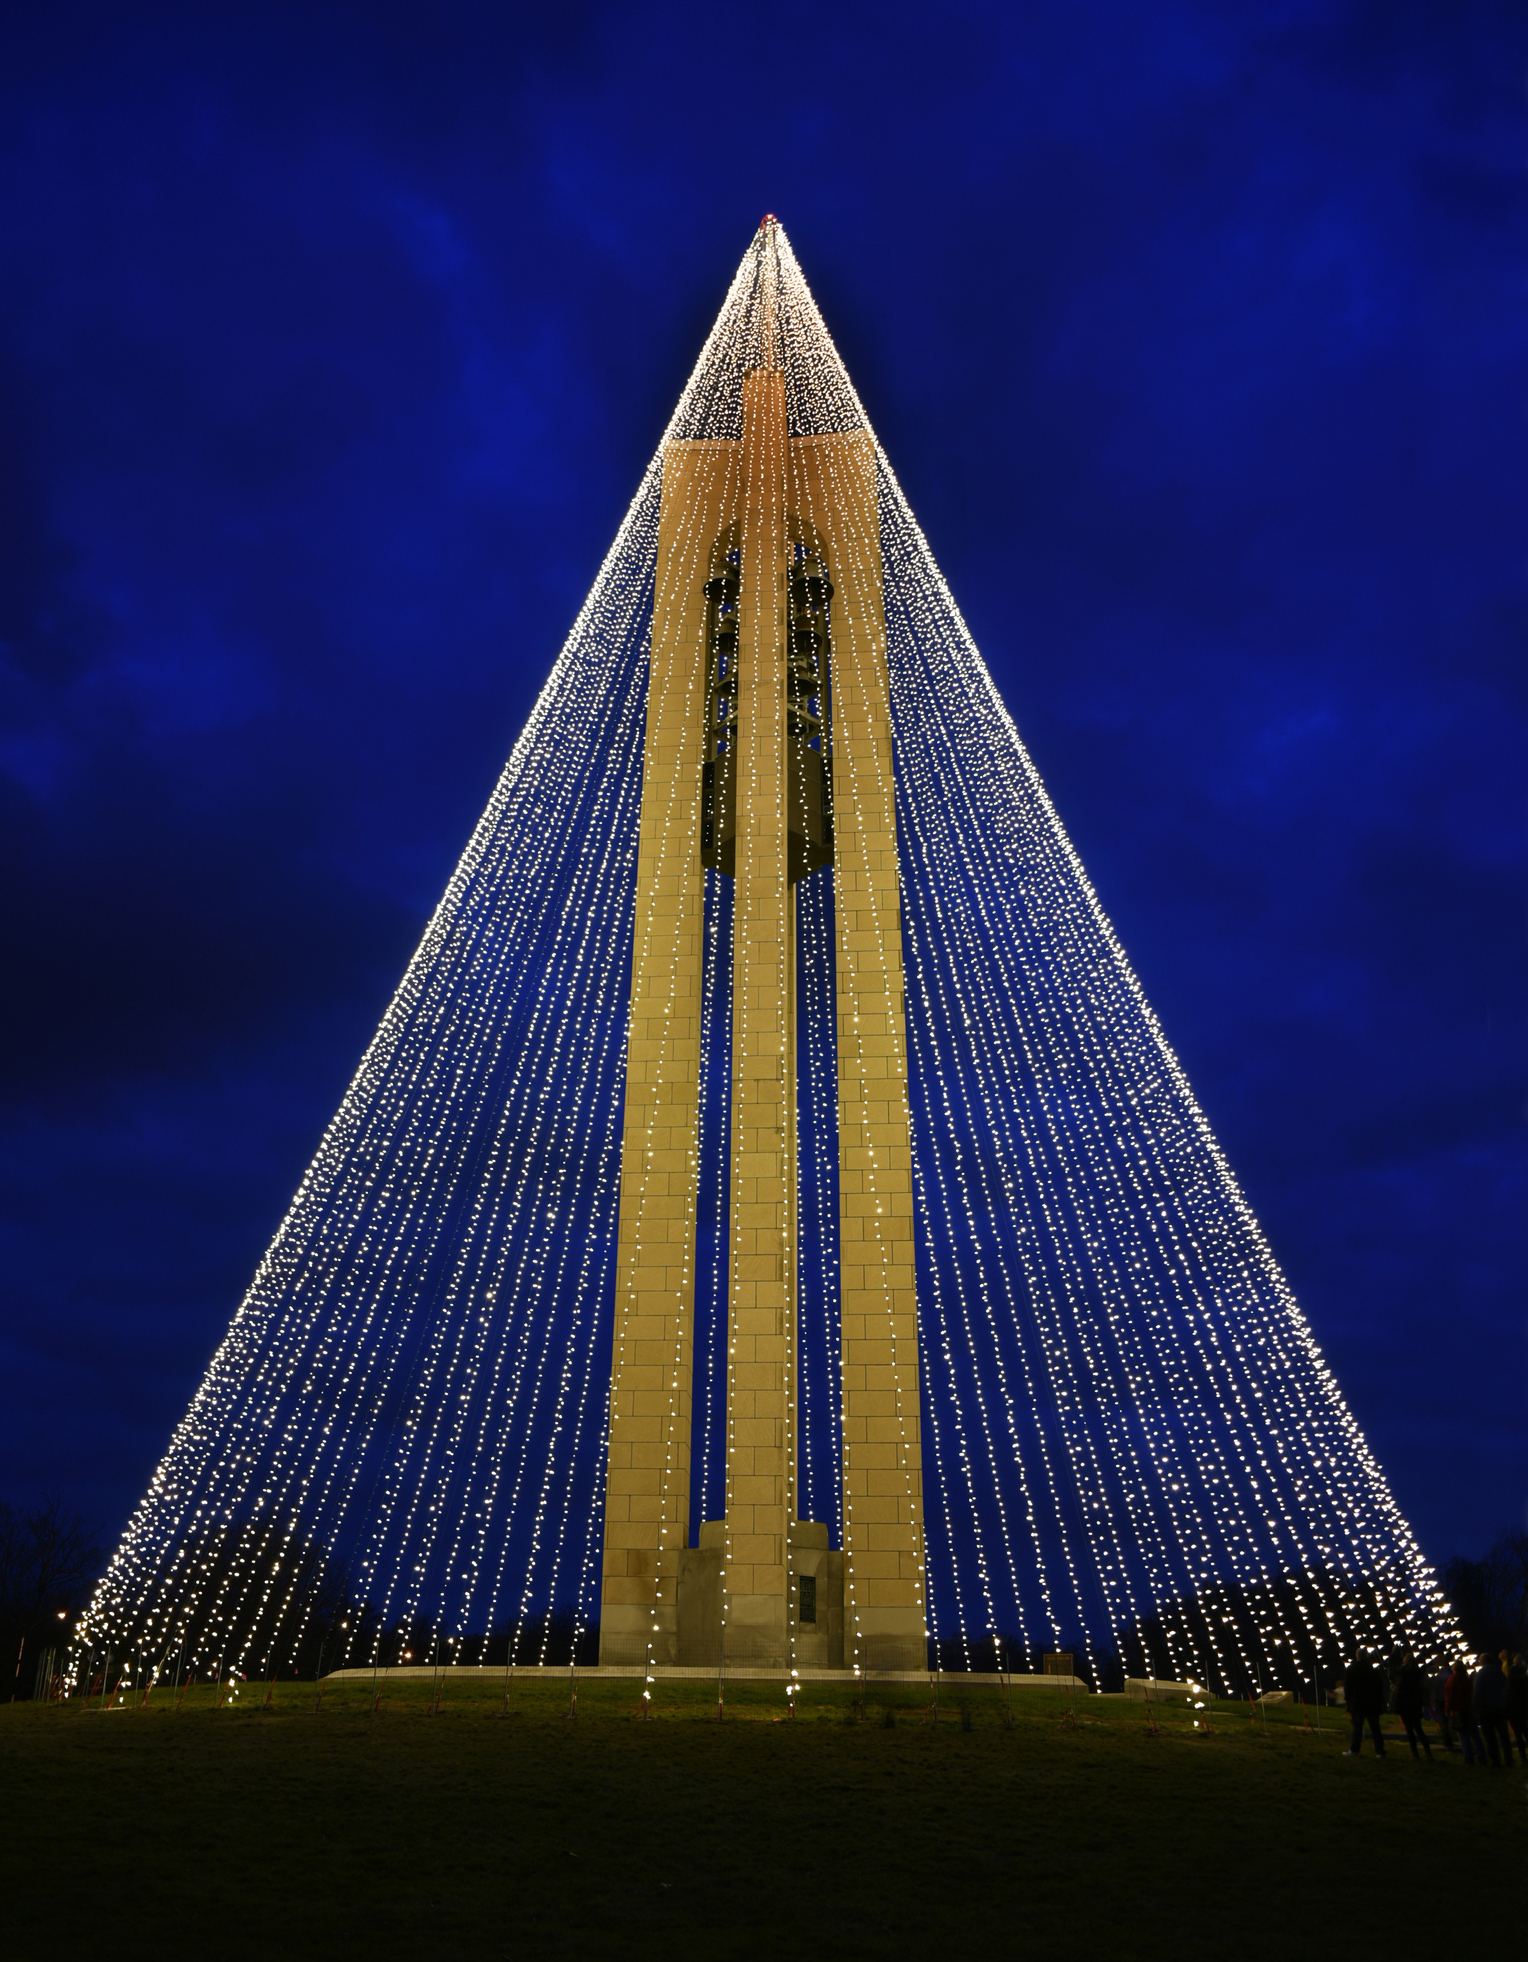 A tower bedecked with long strands of light.